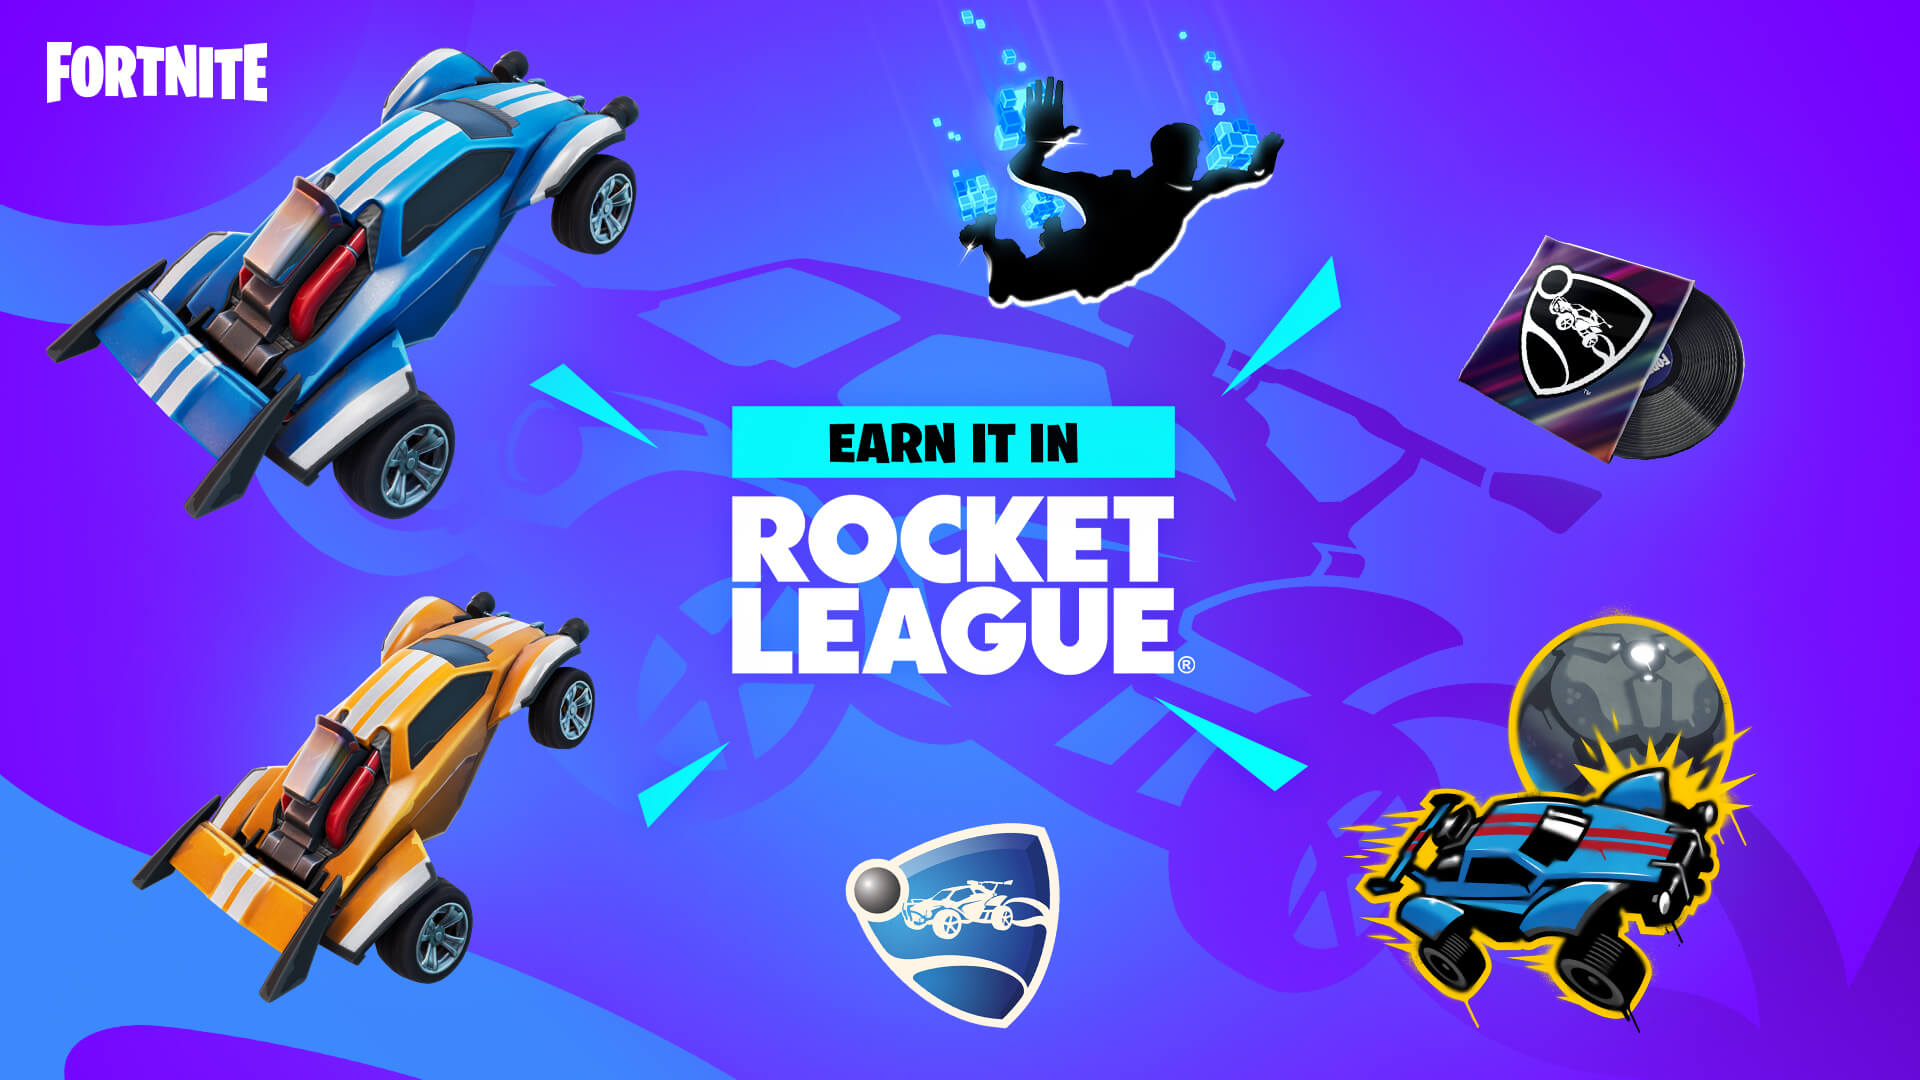 Llama-Rama Brings Fortnite and Rocket League Together!